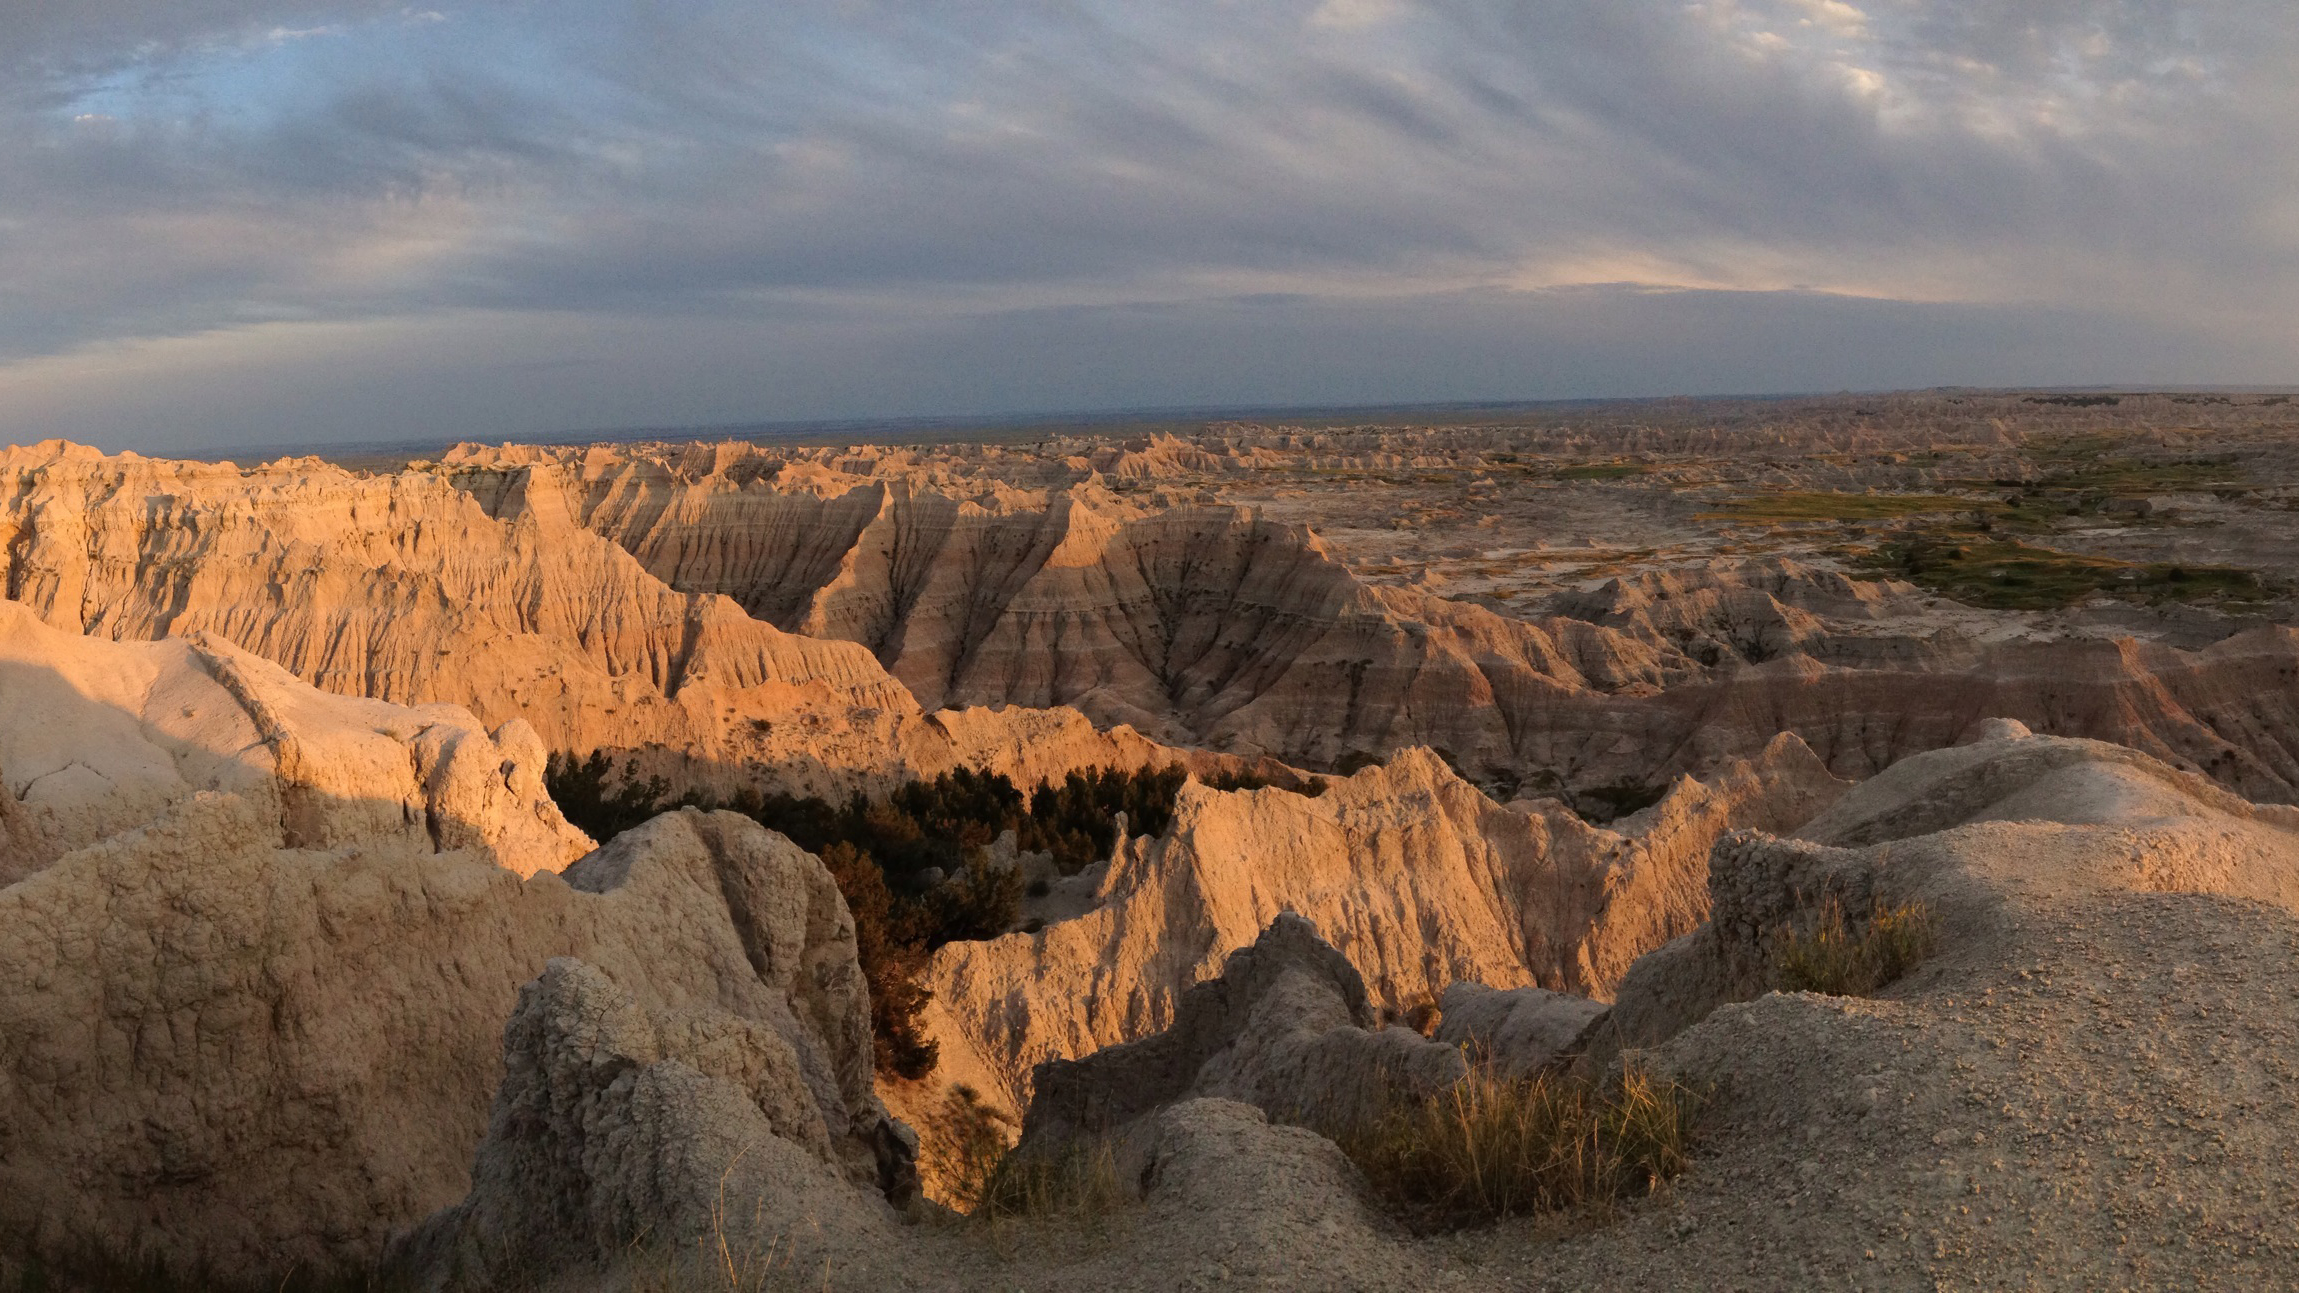 The Badlands of South Dakota.